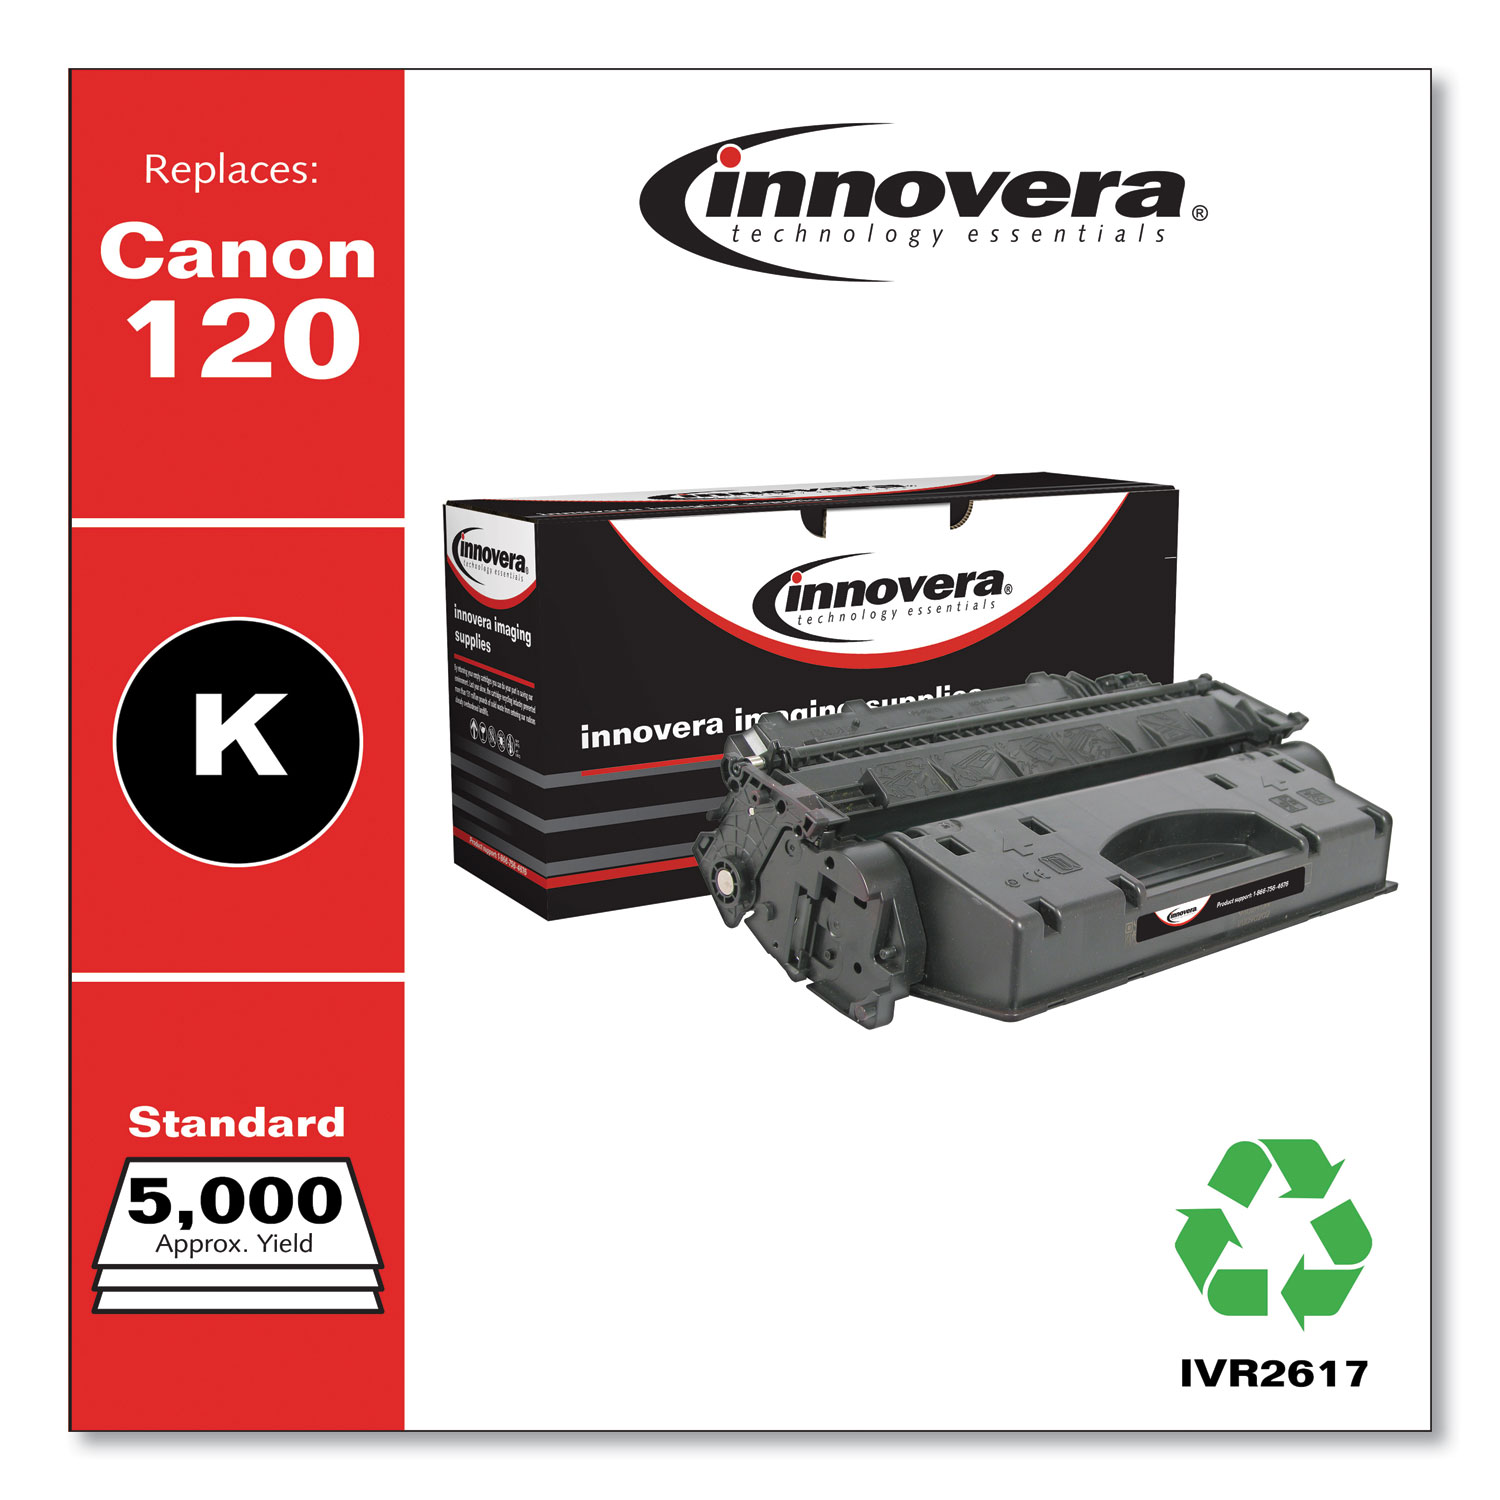 Remanufactured Black Toner Cartridge, Replacement for Canon 120 (2617B001), 5,000 Page-Yield